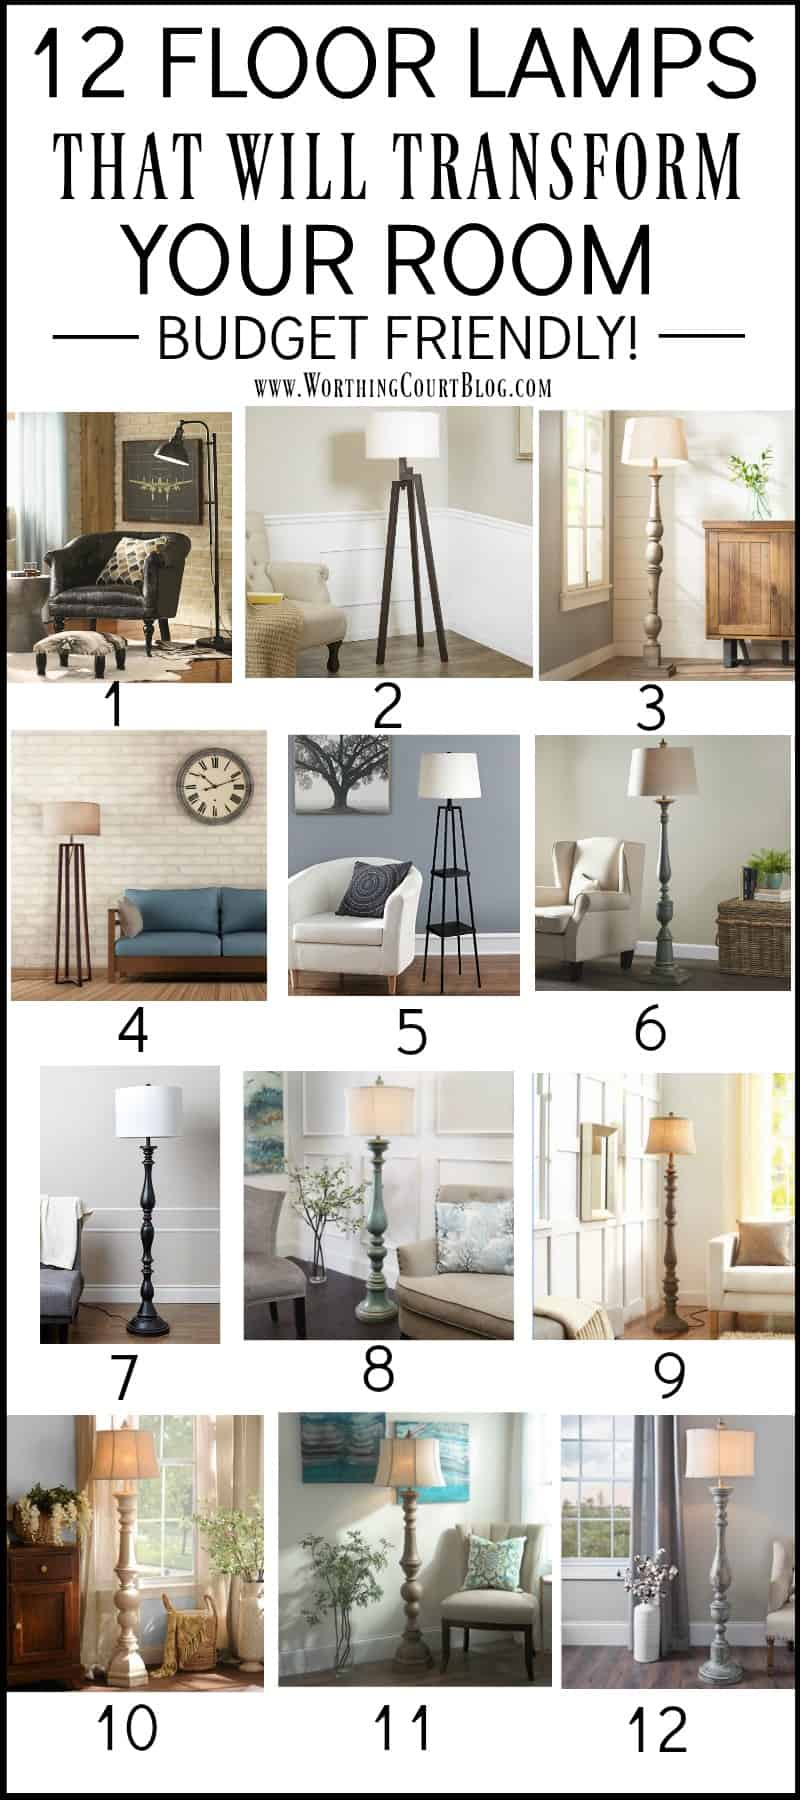 12 Budget Friendly Floor Lamps || Worthing Court